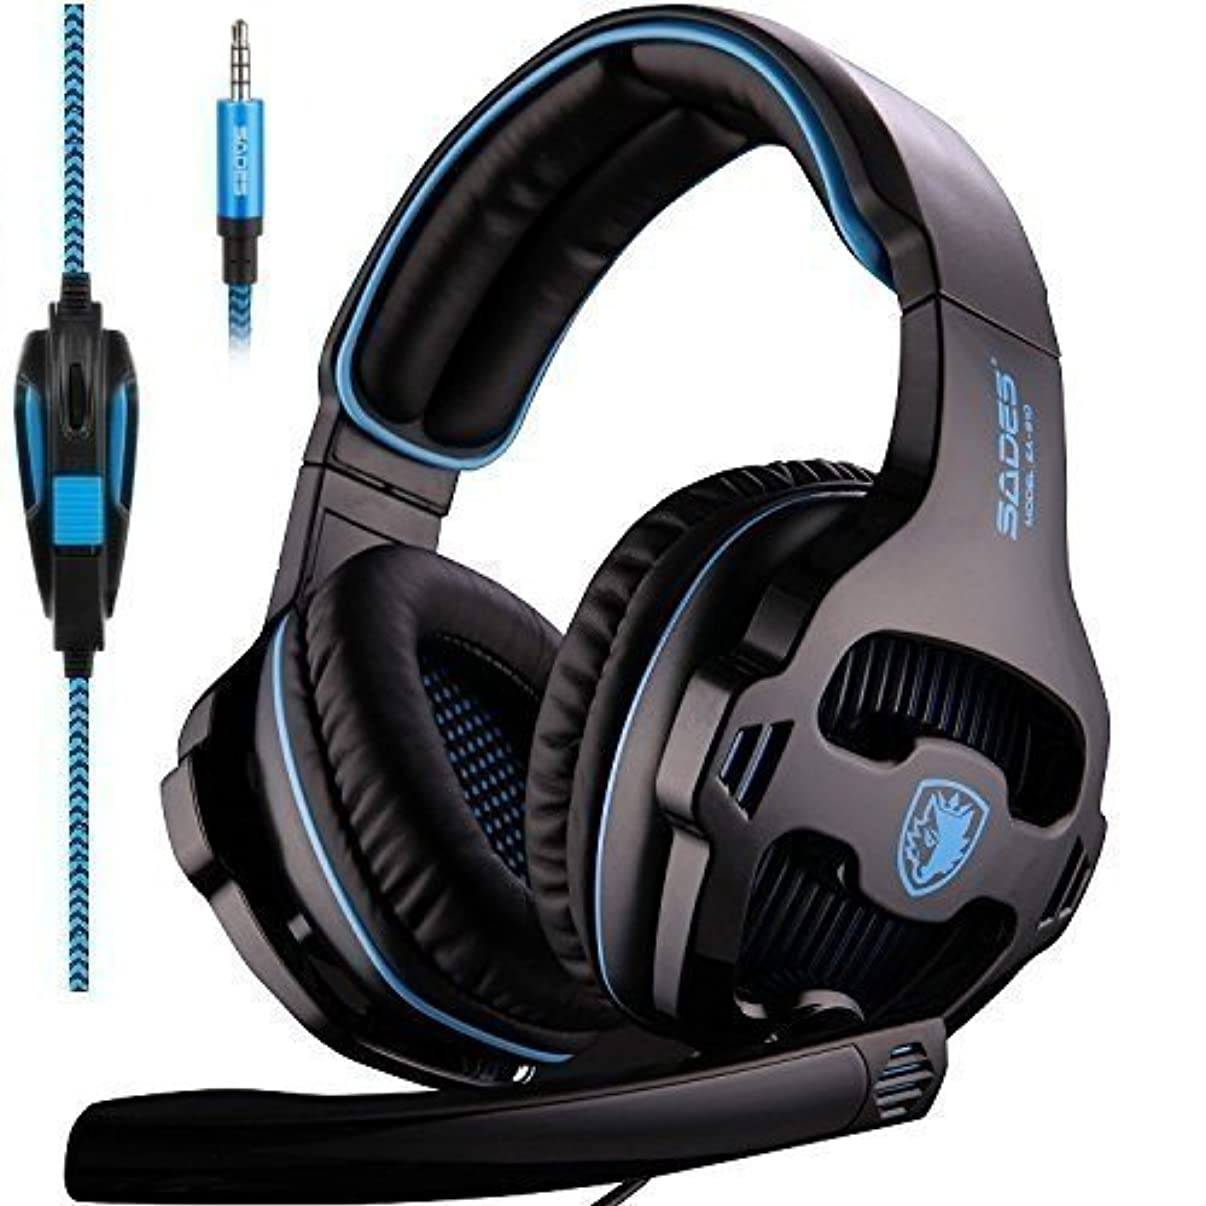 SADES SA810 Stereo Gaming Headset for Xbox One PC PS4 Over-Ear Headphones with Noise Canceling Mic Soft Ear Cushion 3.5mm Jack Cable for Mac Smartphone Laptop Tablet Blue